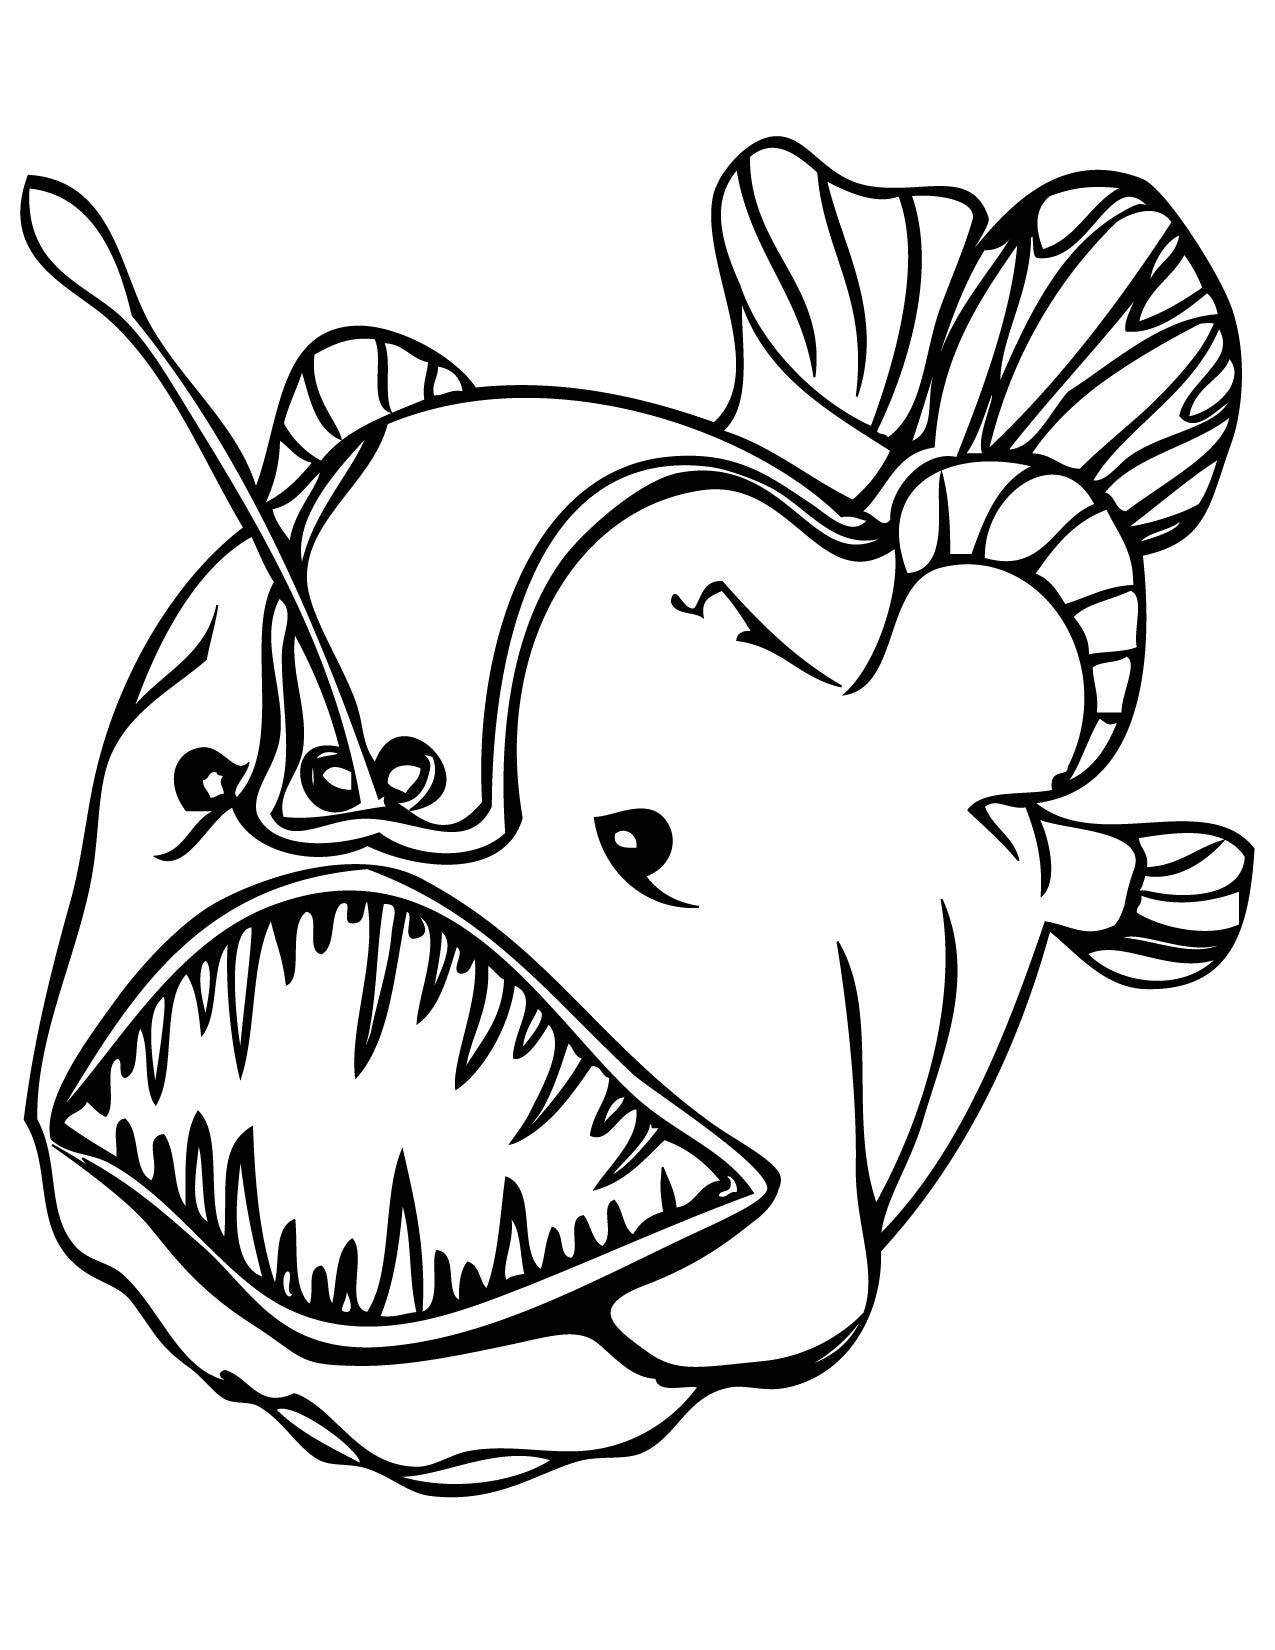 fish to color simple fish coloring pages download and print for free fish to color